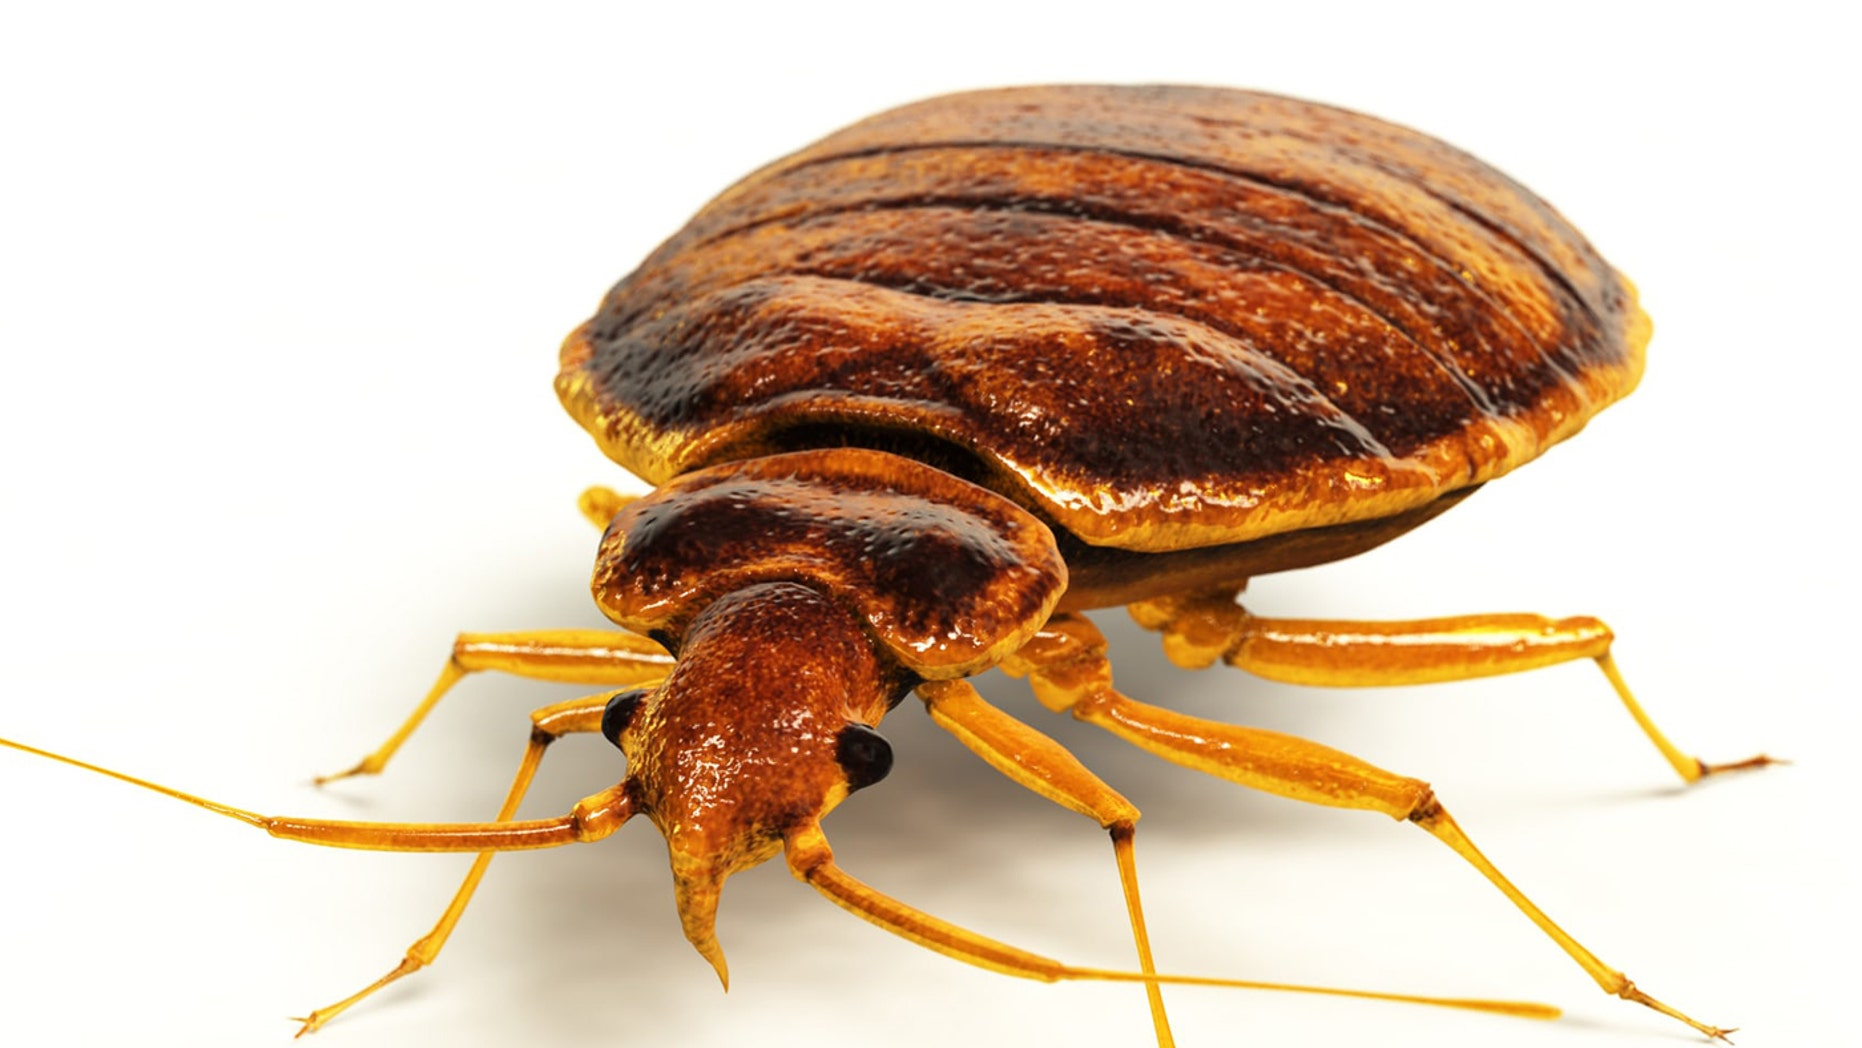 The United Kingdom is dealing with a bed bug outbreak.